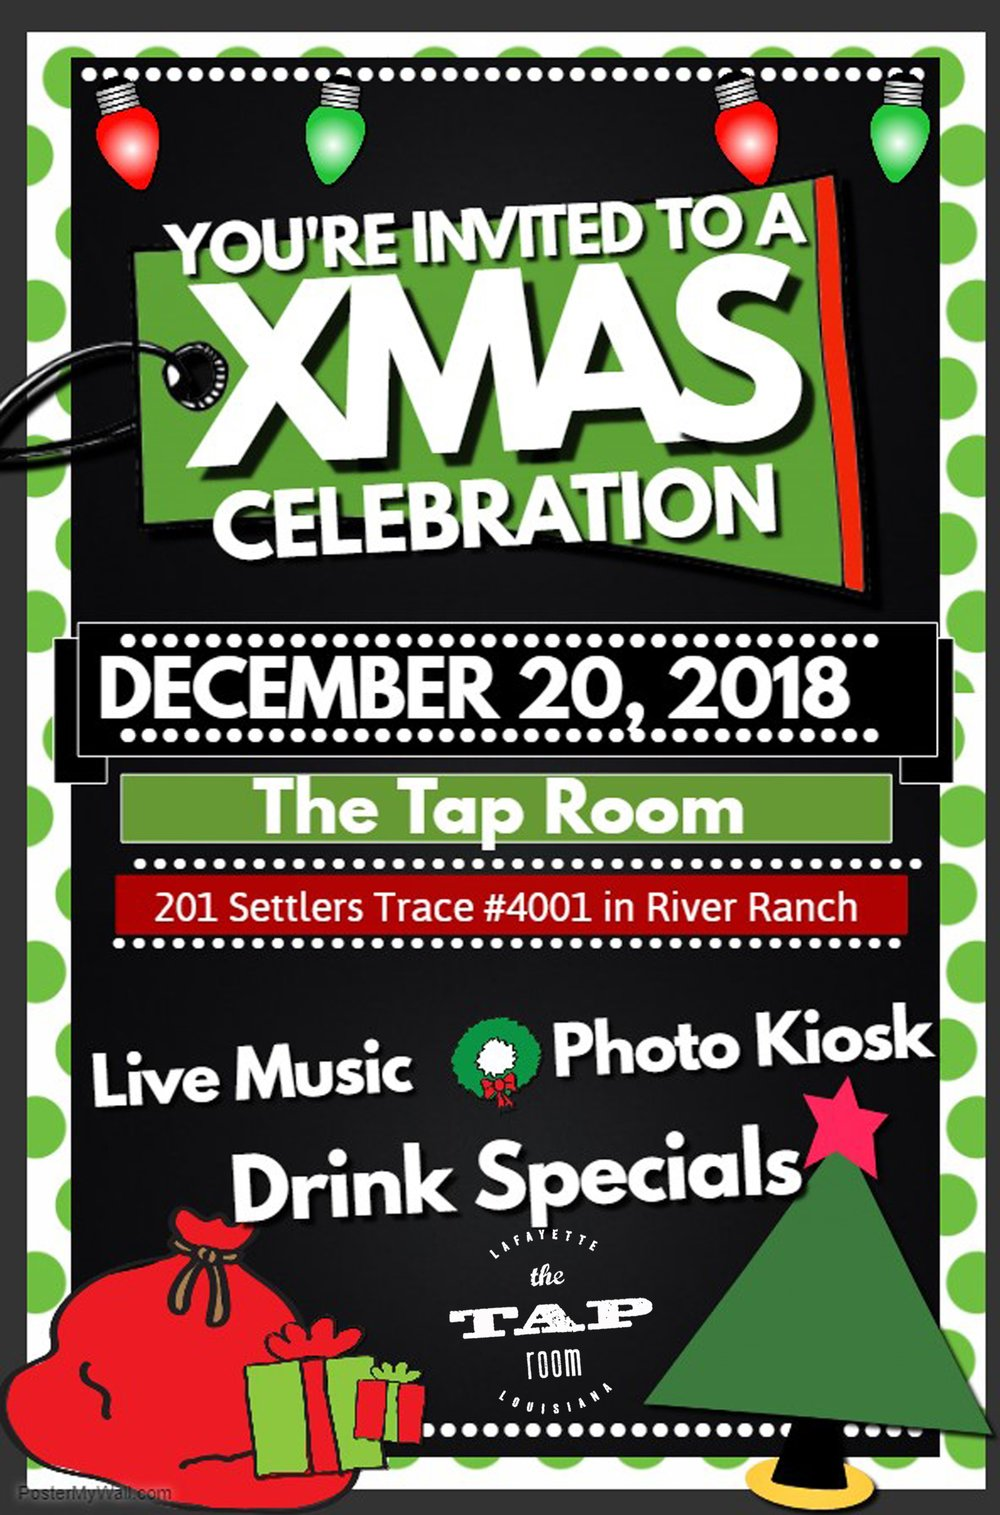 Let's raise a glass of holiday cheer, We want to see you in your best (or worst) holiday gear!  Whether you've been naughty or nice, don't think twice.... Join us on Thursday, December 20 from 8-11pm for live music, drink specials and an  Ohh Snap Booth - Photo Booth Company  photo kiosk!